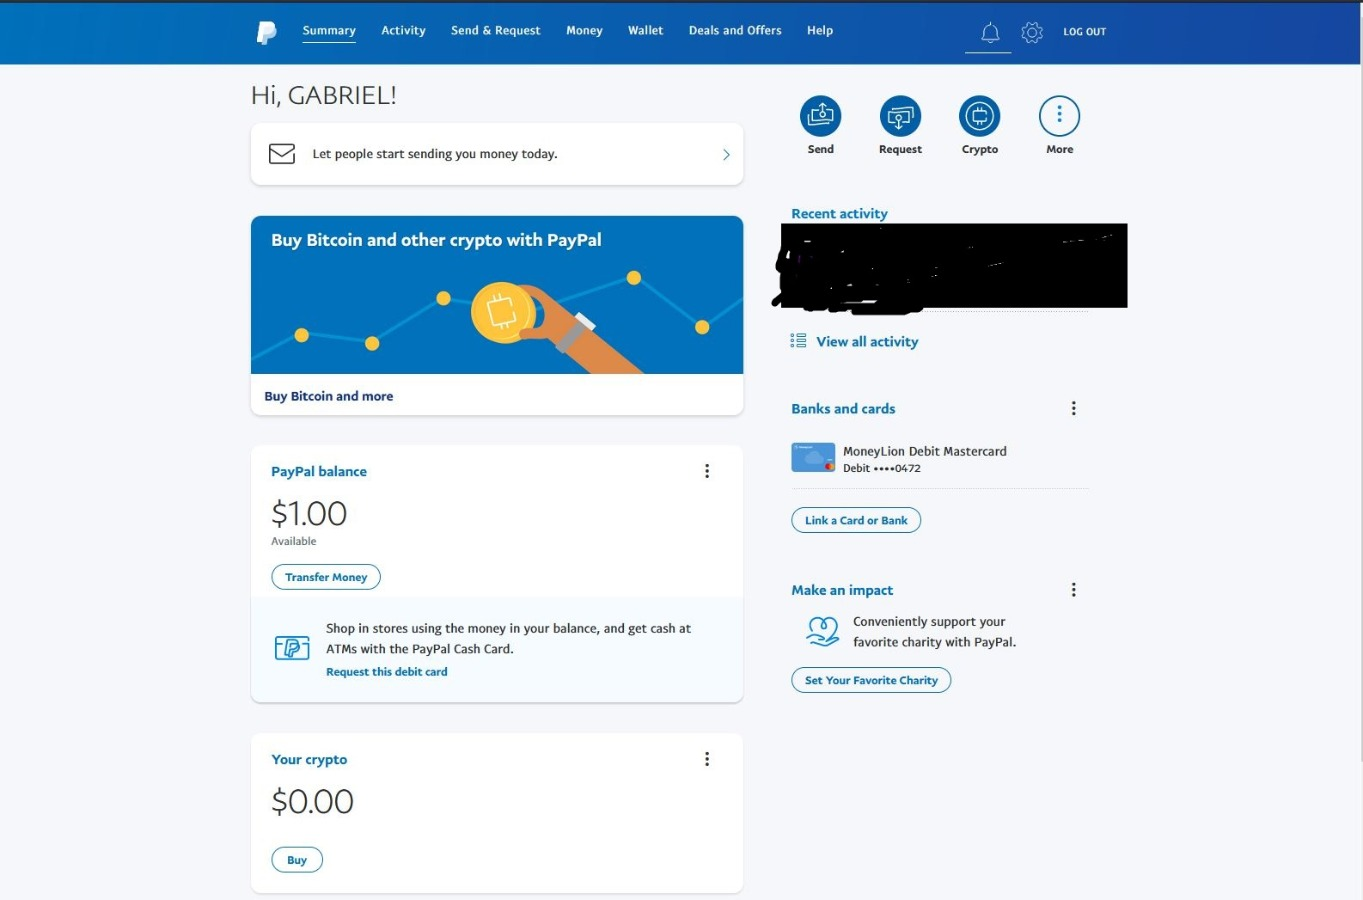 USA PayPal Account debit card linked fullz verified ssn